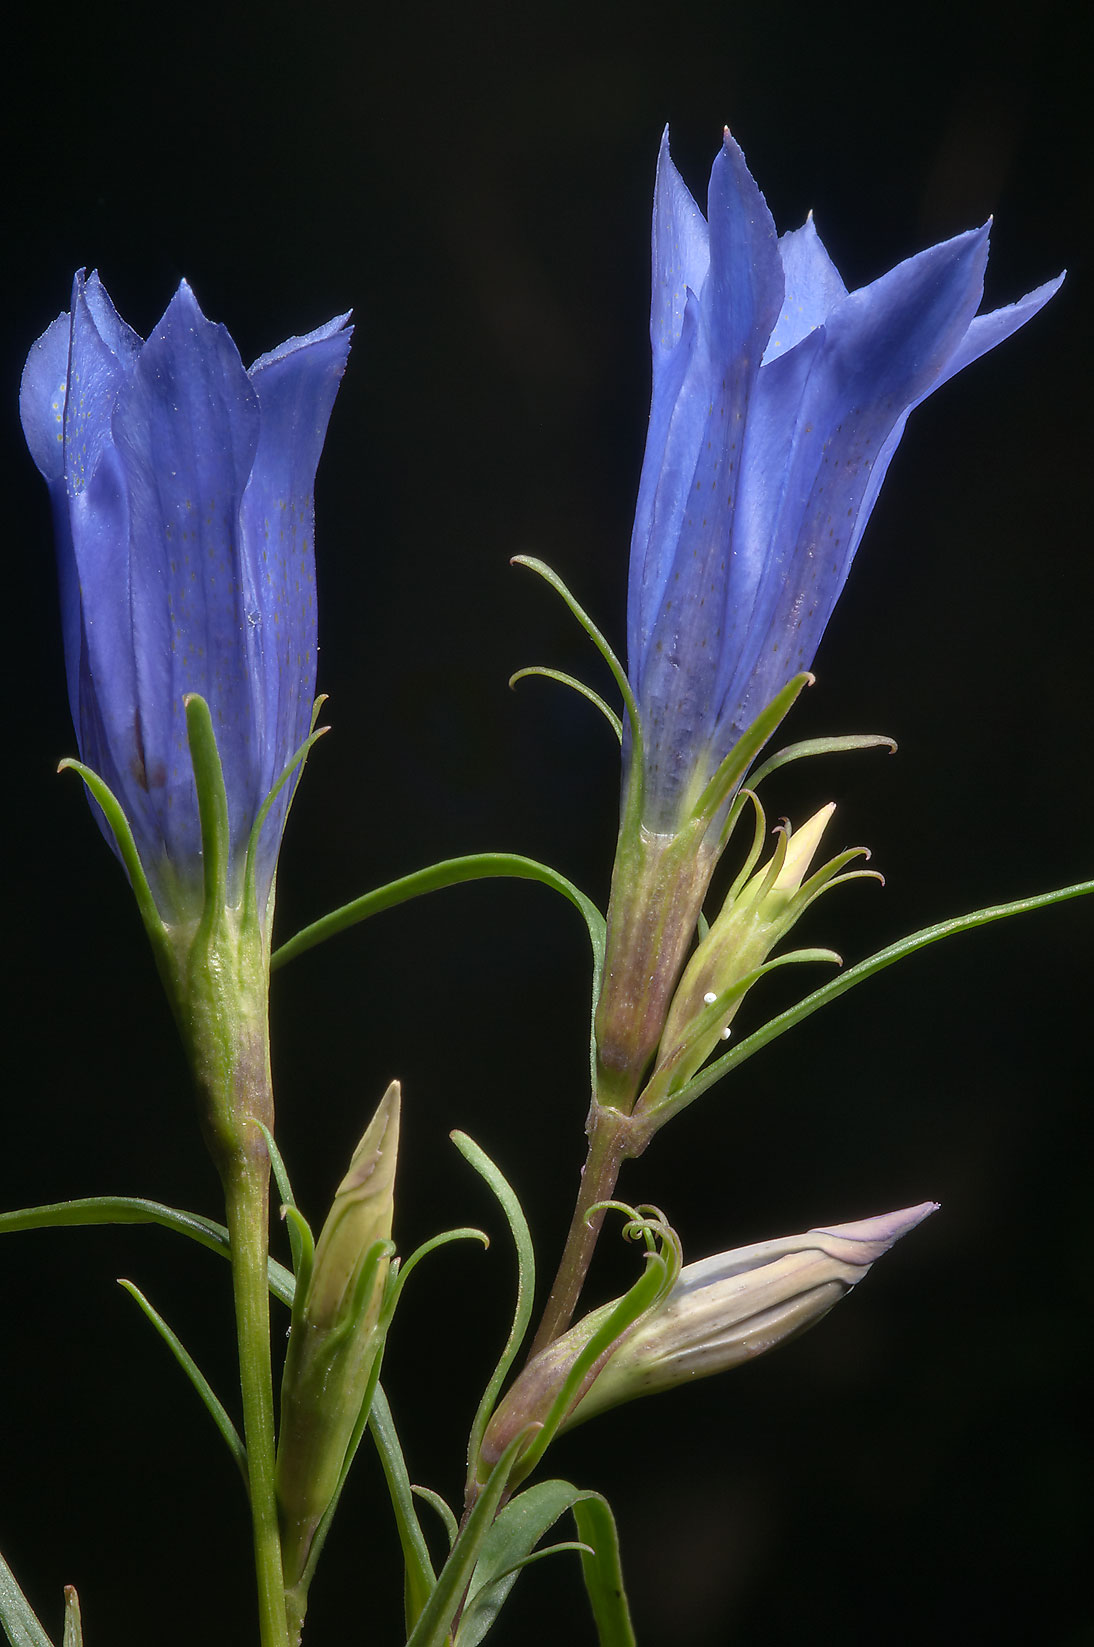 Flowers of Marsh Gentian (Gentiana pneumonanthe...miles south from St.Petersburg. Russia